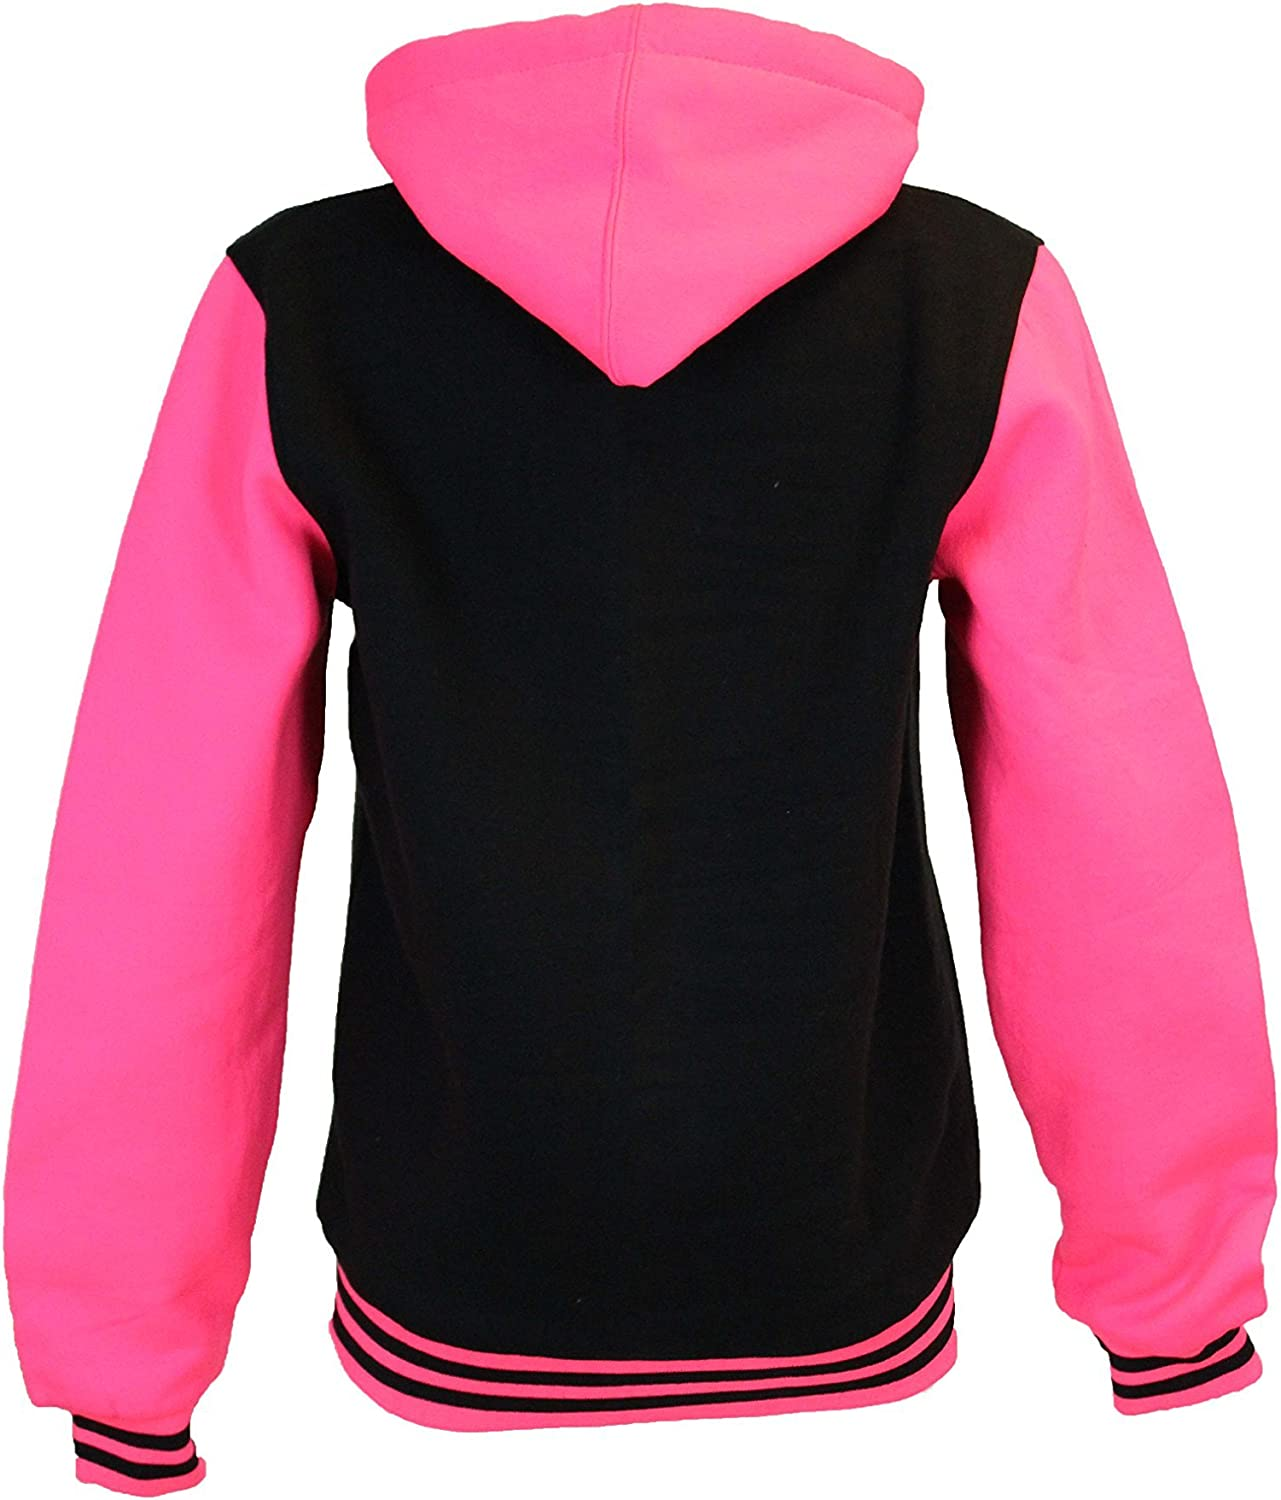 Fashion Oasis Ladies Baseball Varsity Jacket with NEON Pink Fluorescent Sleeves Hooded Hoodie Sizes S//M 8-10 M//L 12-14 Plus Sizes 18 to 28